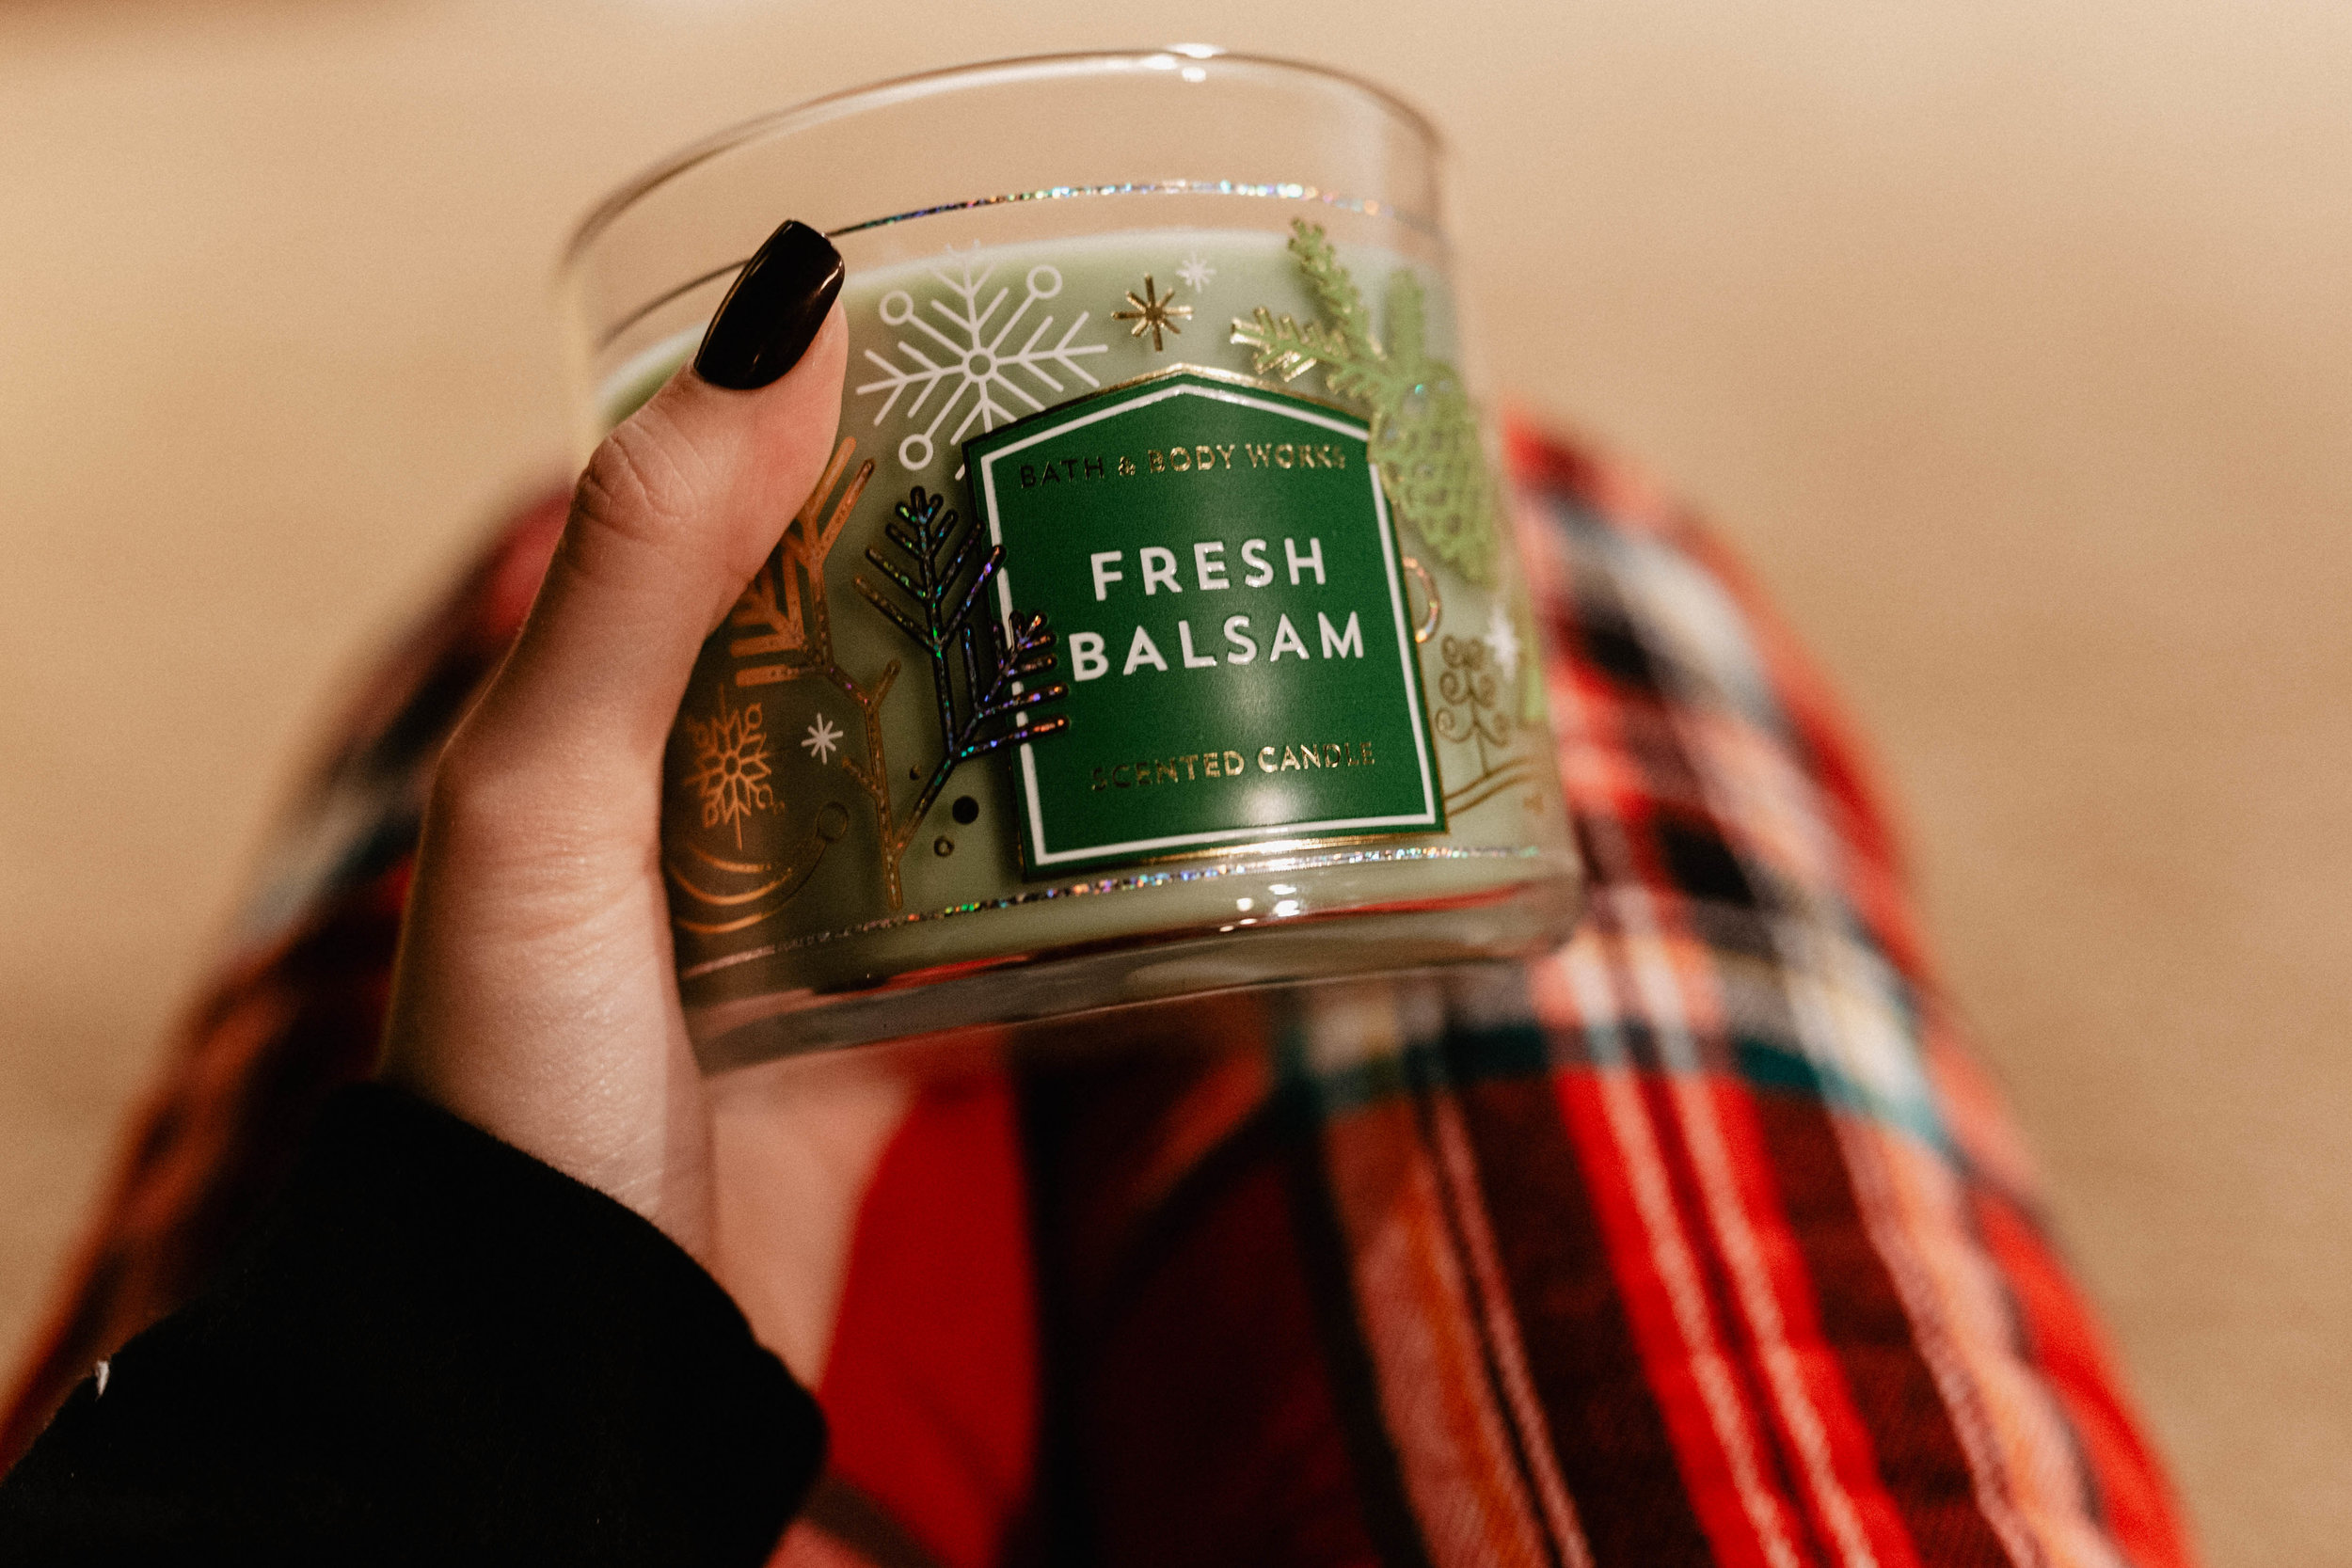 FRESH BALSAM - This one is my favorite out of the entire bunch. It smells like you literally just went and chopped down a tree and freshly put it into your home, and then it slapped you in the face a little just so you remember it's there, but like, in a good way. Highly recommend this one to my people out there who are sensitive to vanilla (like my mom) and floral (like myself), this one doesn't bother me and I'm pretty sure won't bother her. It strictly smells like nature and it's amazing.